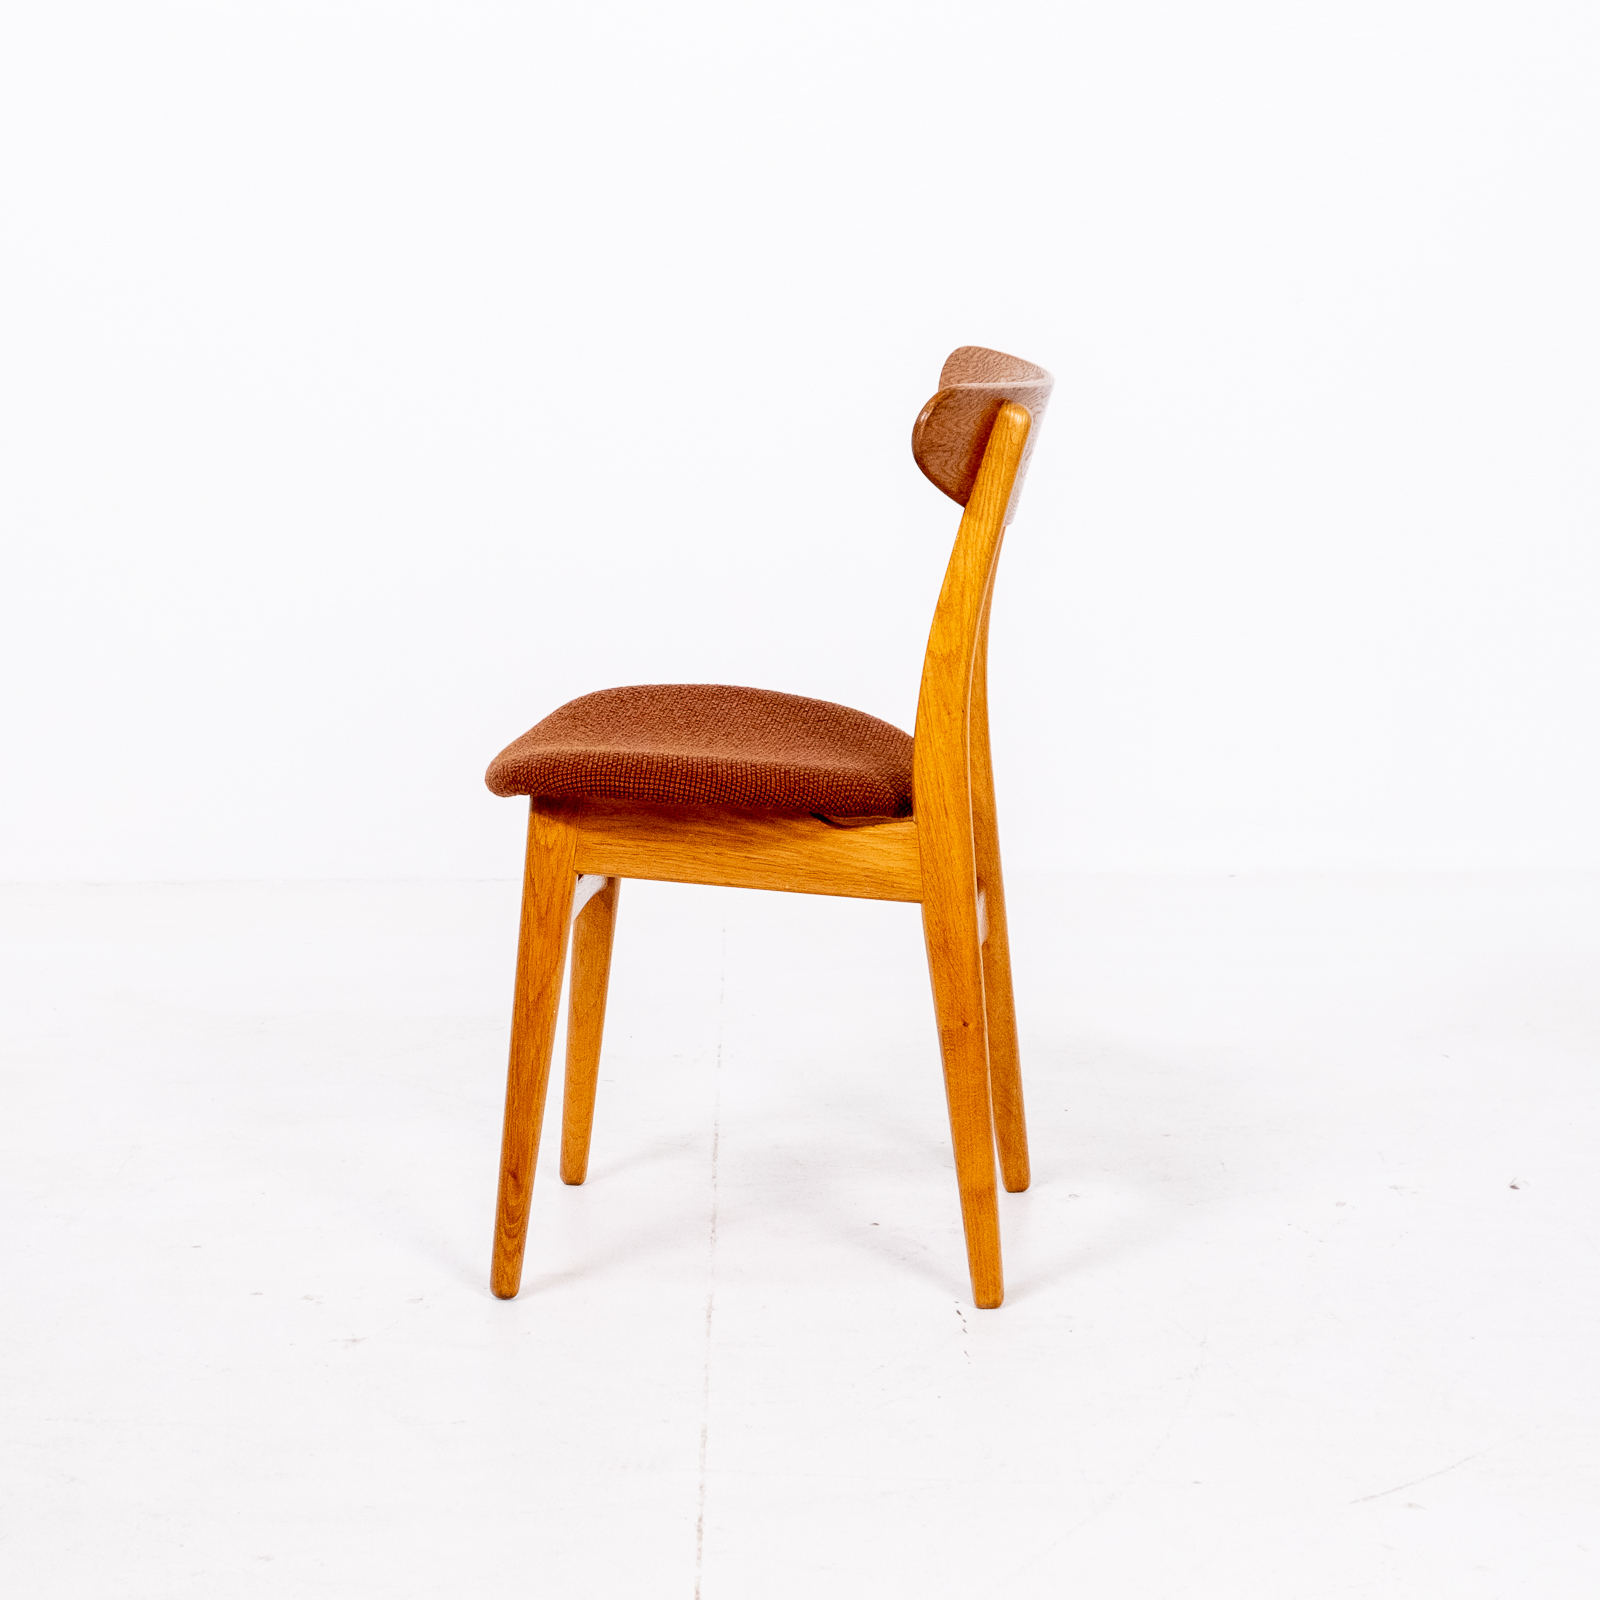 Set Of 4 Ch 30 Dining Chairs By Hans Wegner For Carl Hansen And Son In Oak And Kvadart Upholstery, 1950s, Denmark 06